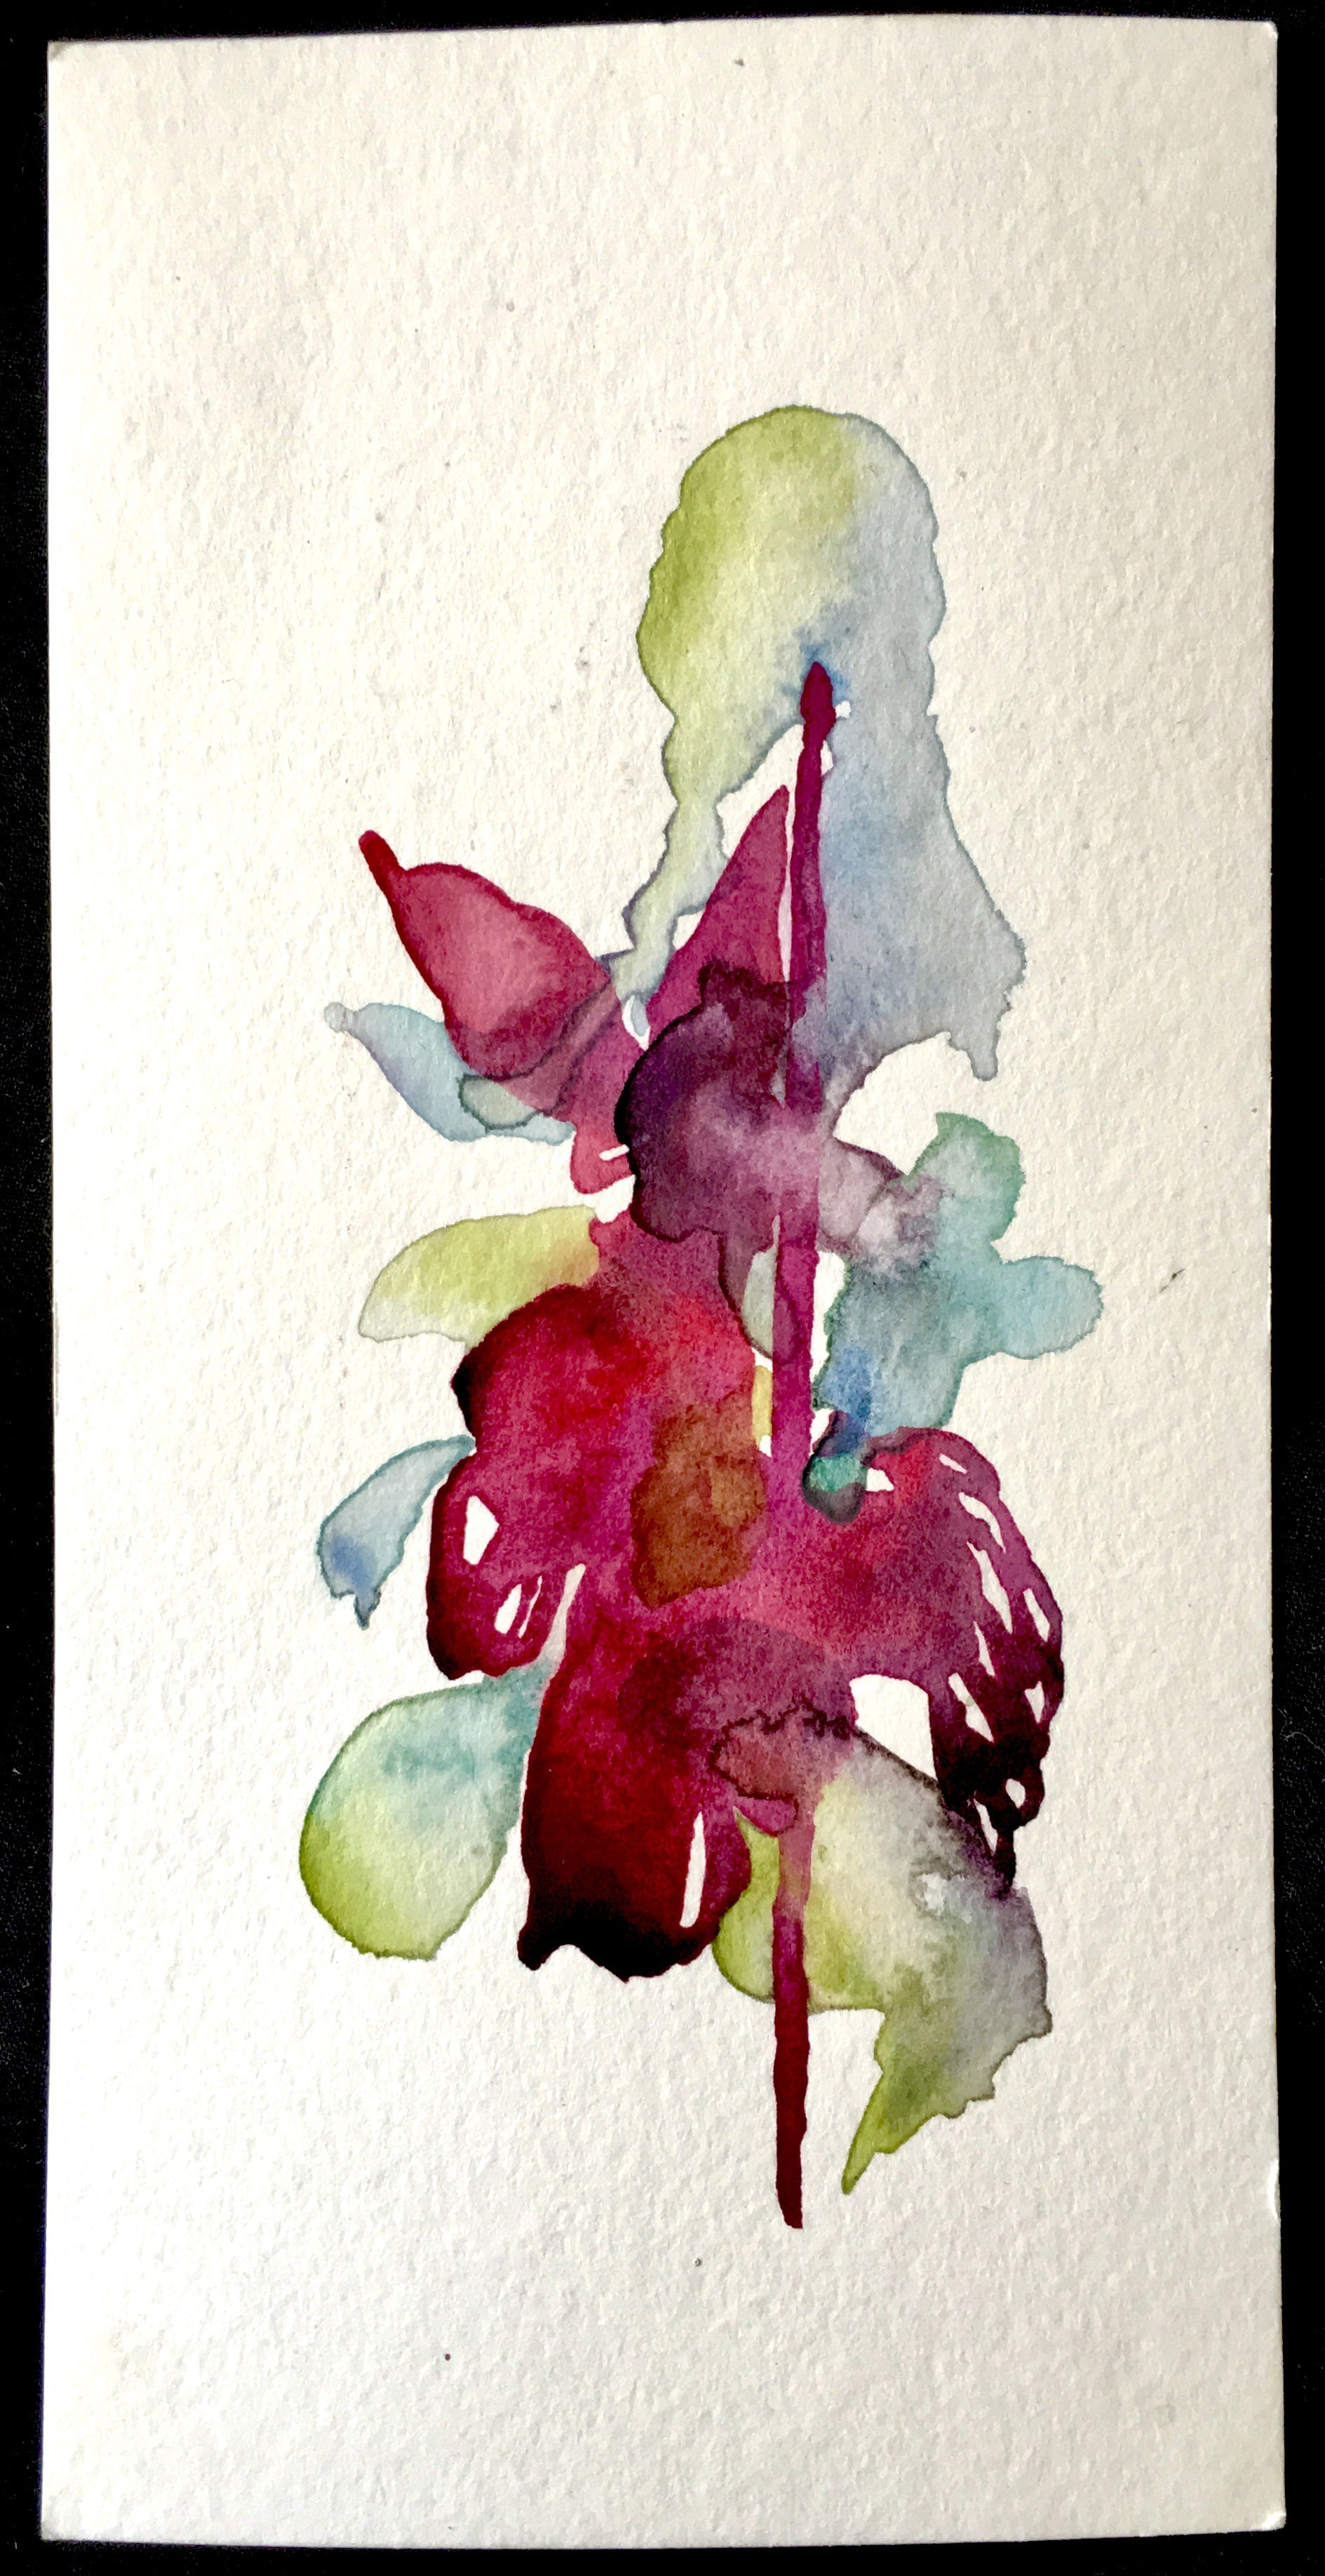 watercolor-with-purple-texture.jpg